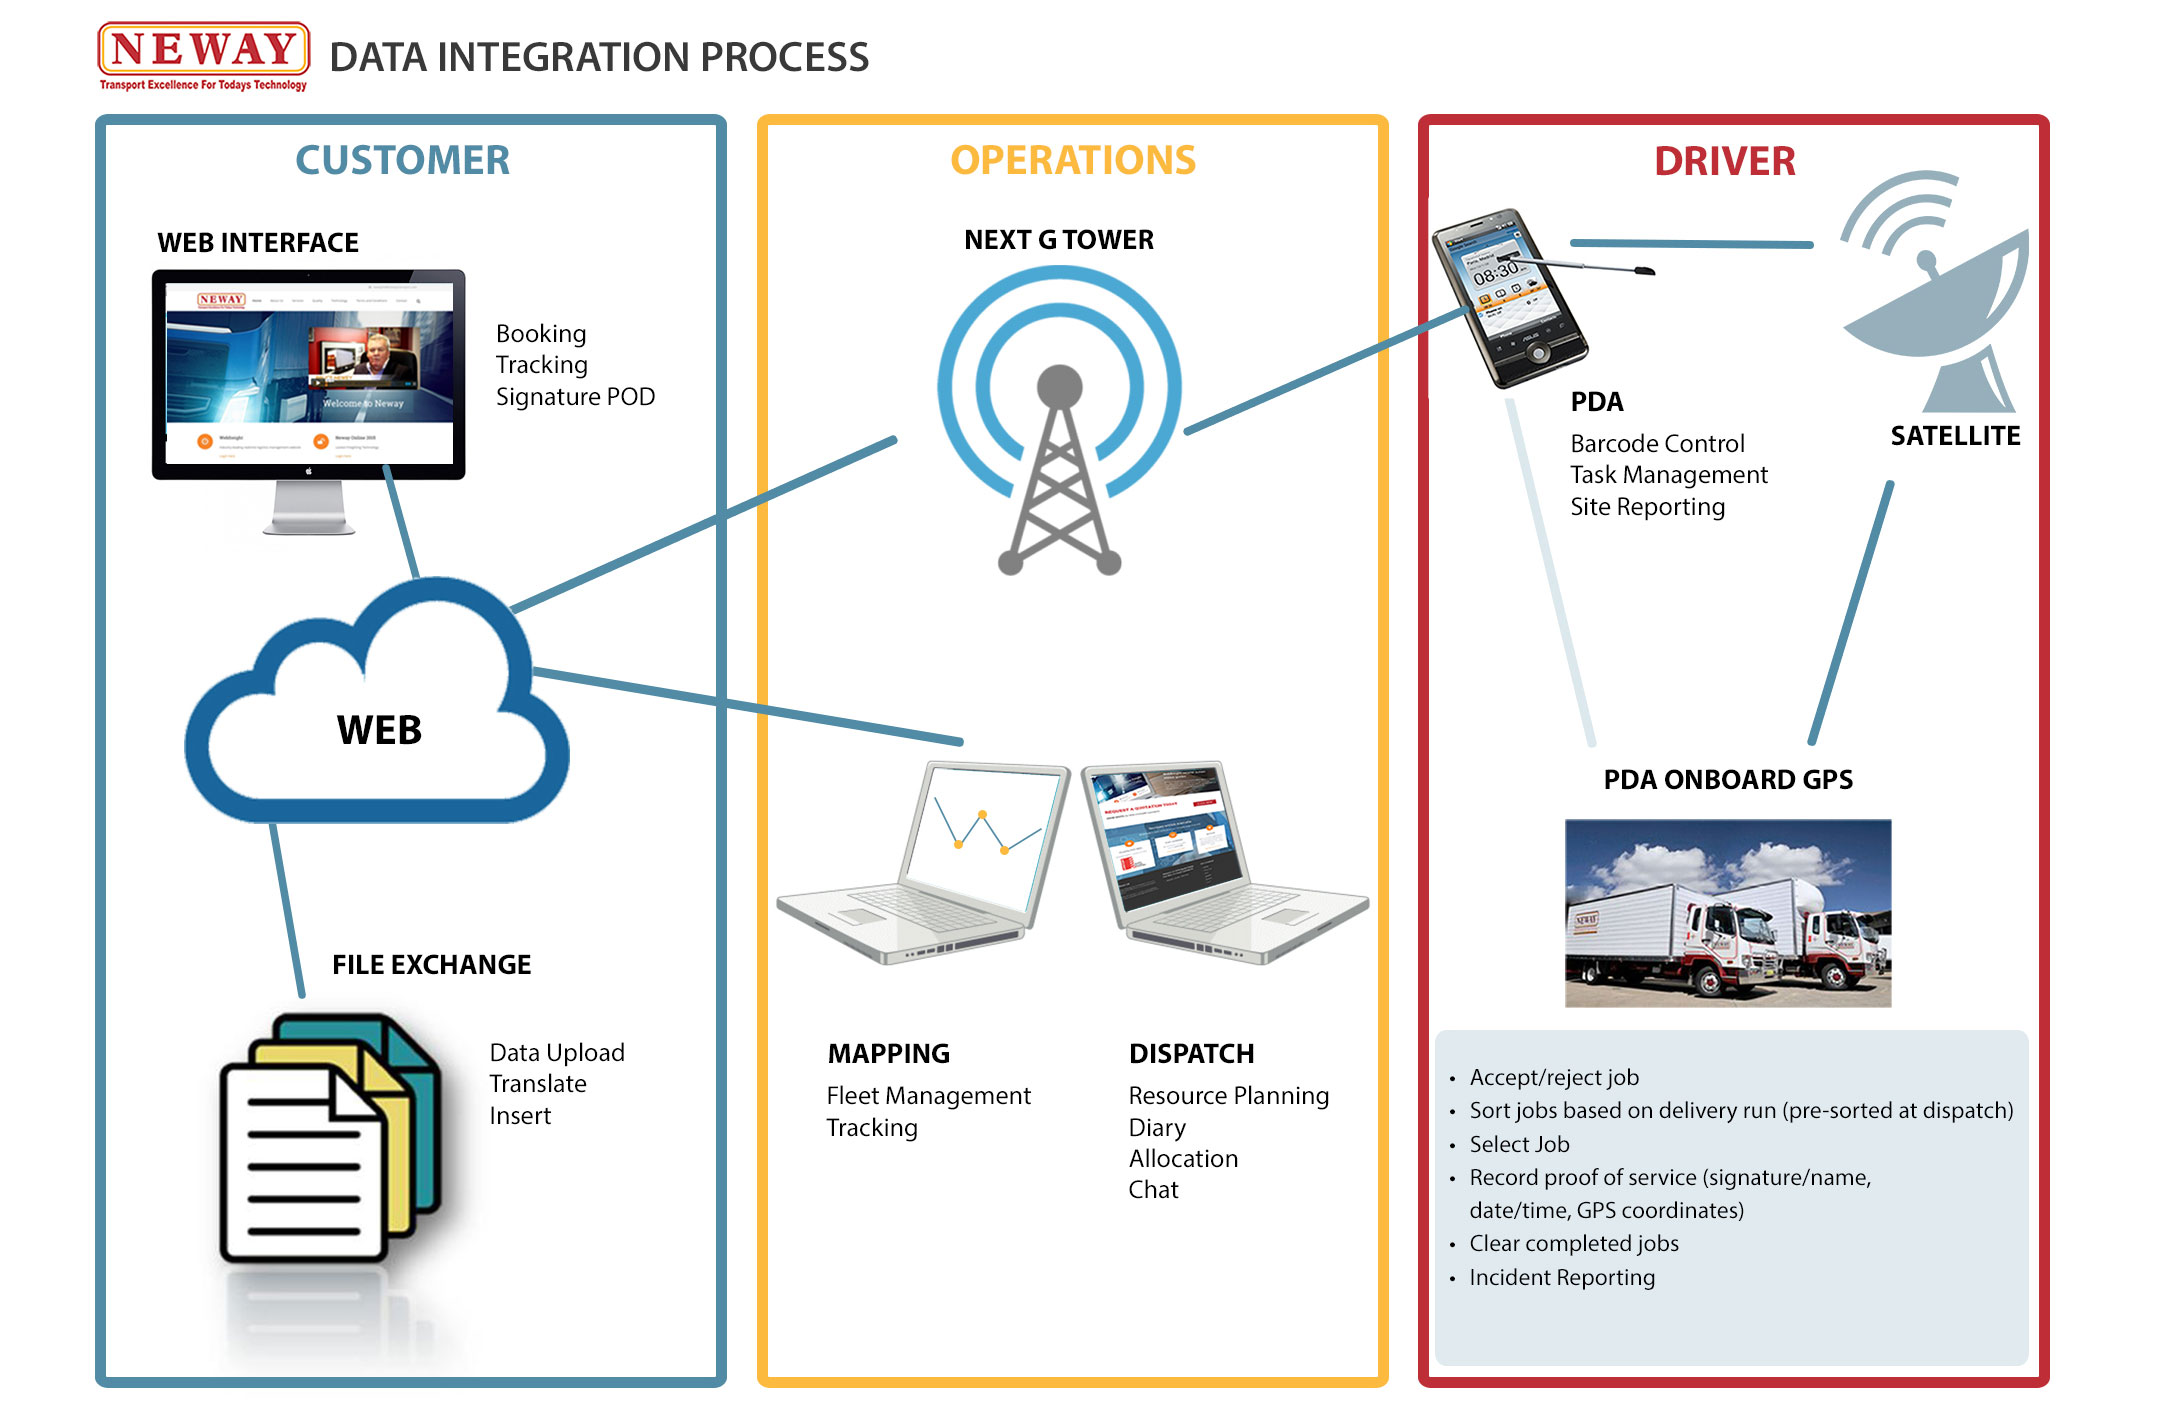 Neway Data Integration Process file